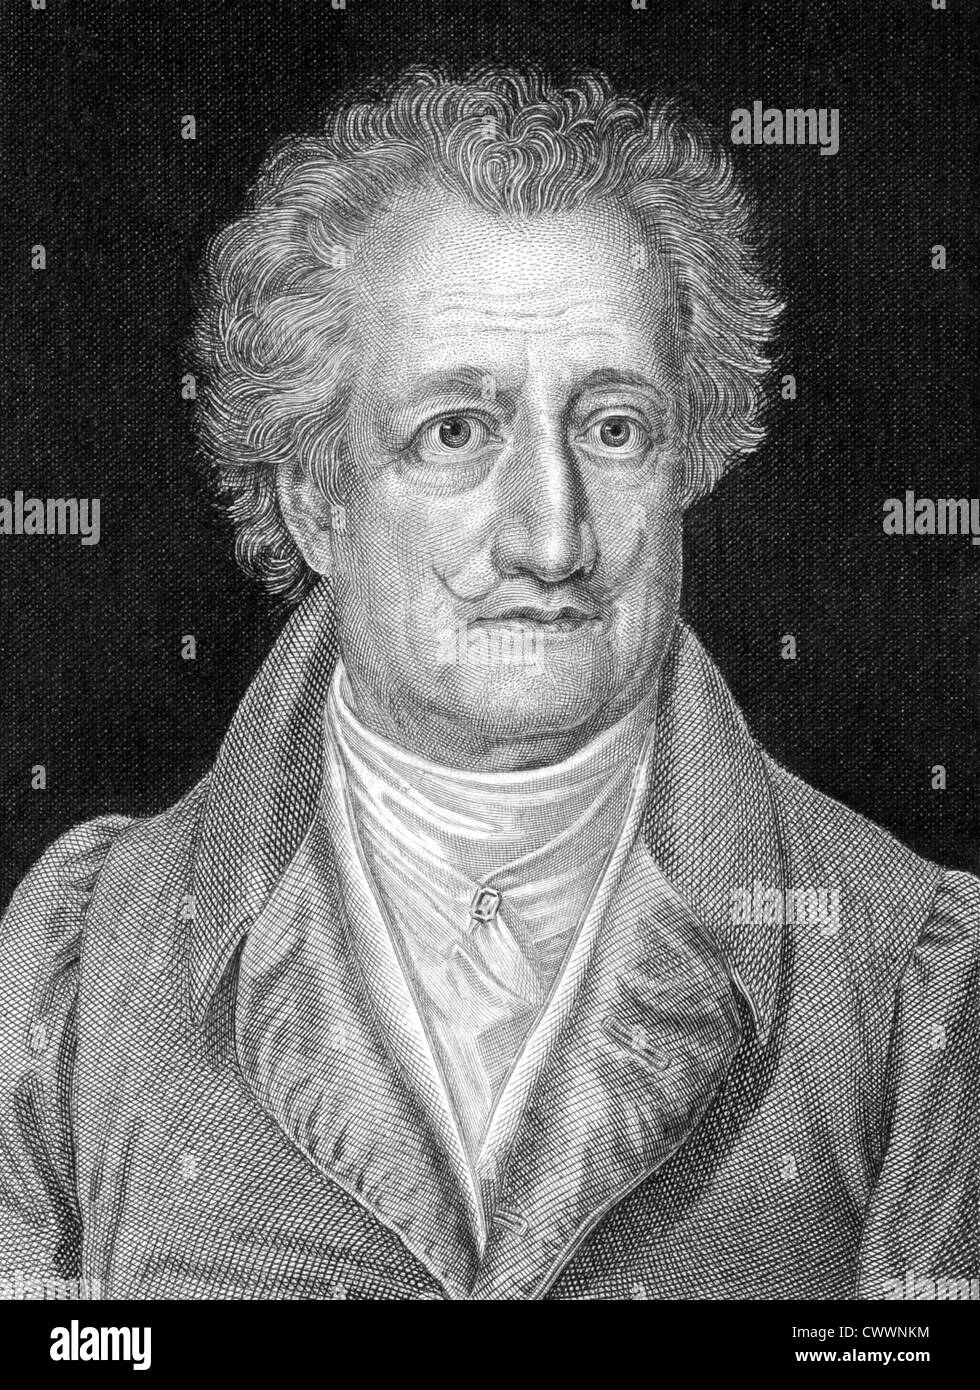 Johann Wolfgang von Goethe (1749-1832) on engraving from 1859. German writer, artist and politician. Stock Photo